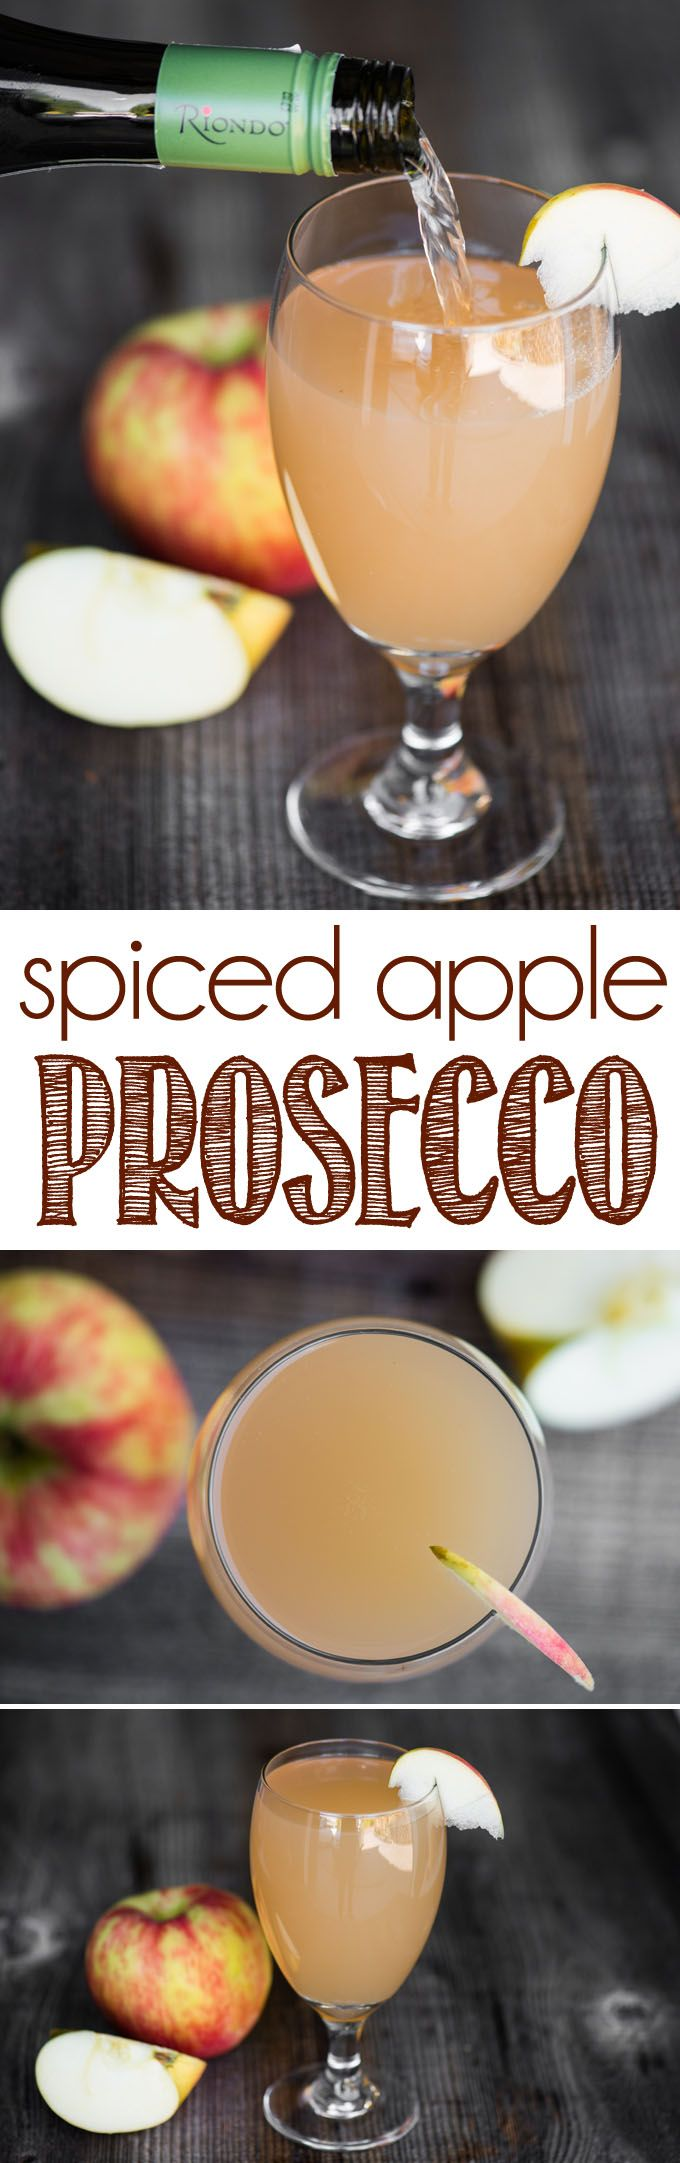 Spiced Apple Prosecco is a quick and easy drink full of fall flavor. Prosecco cocktails are perfect for holiday gatherings or relaxing after a busy day. #proscecco #cocktail #proseccococktails